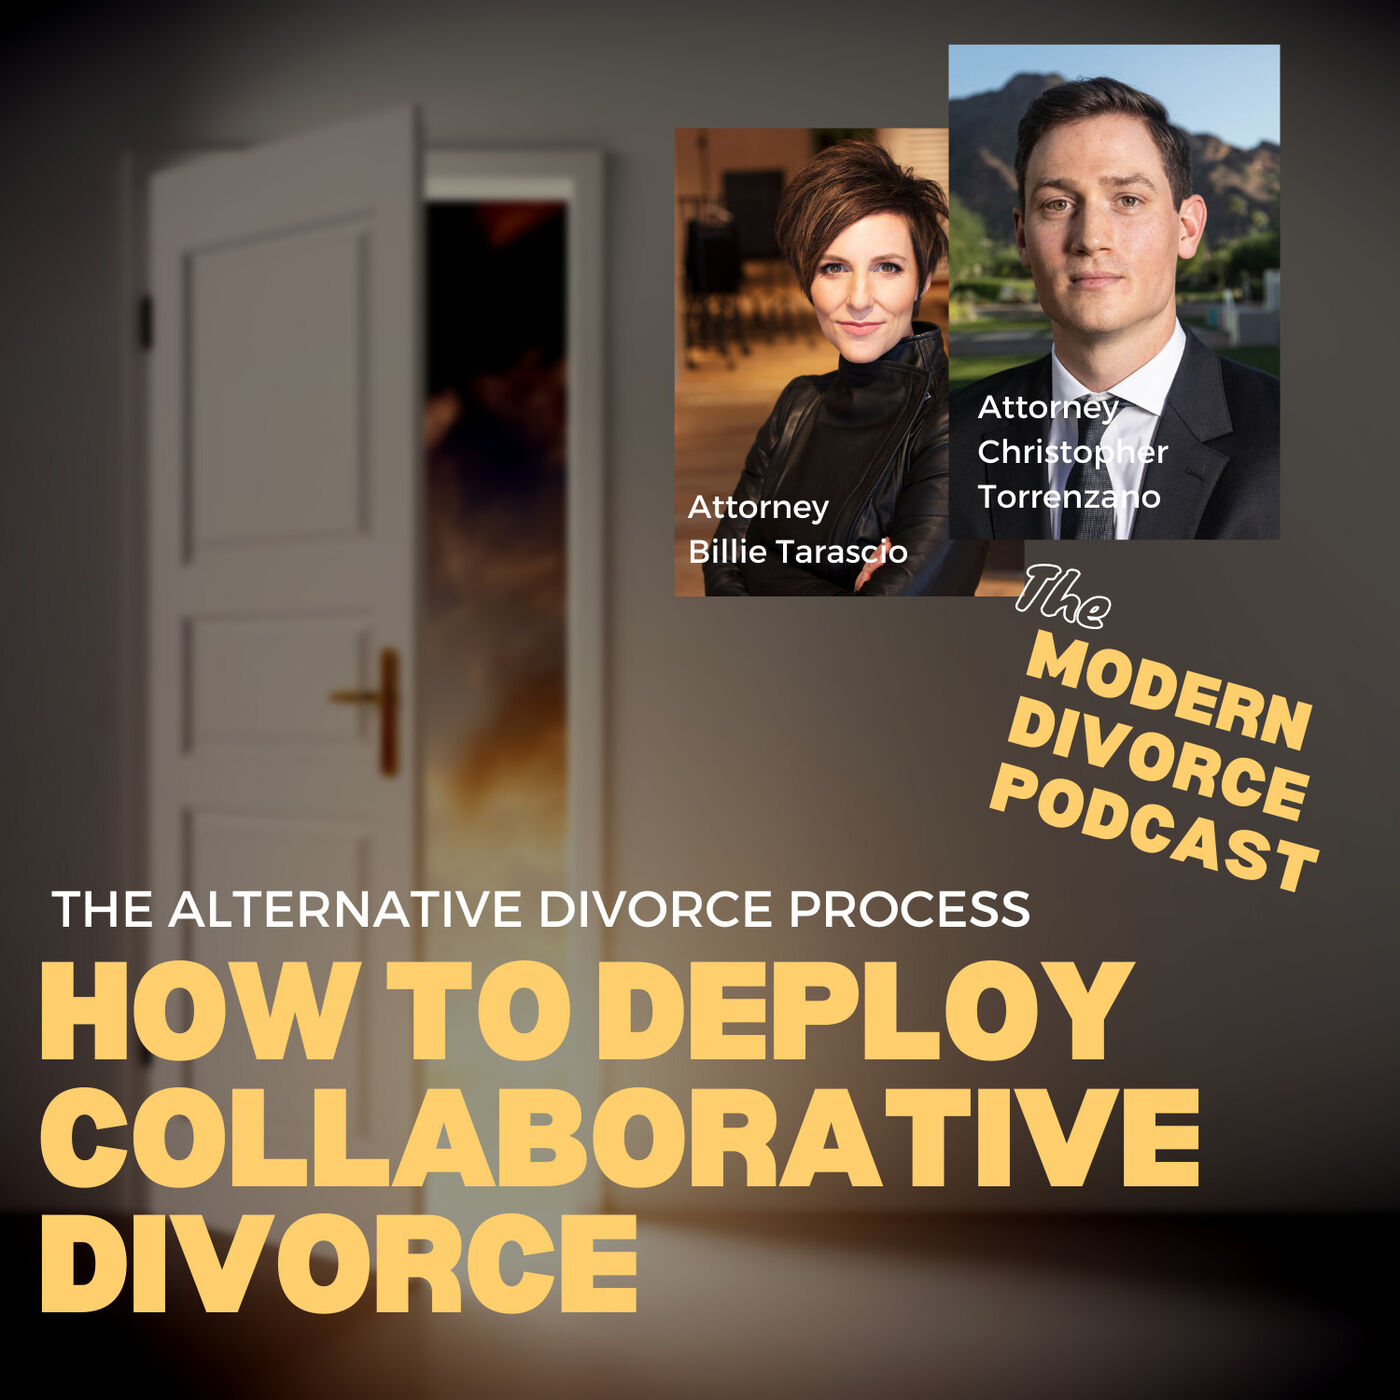 Deploying collaborative law for a cleaner divorce